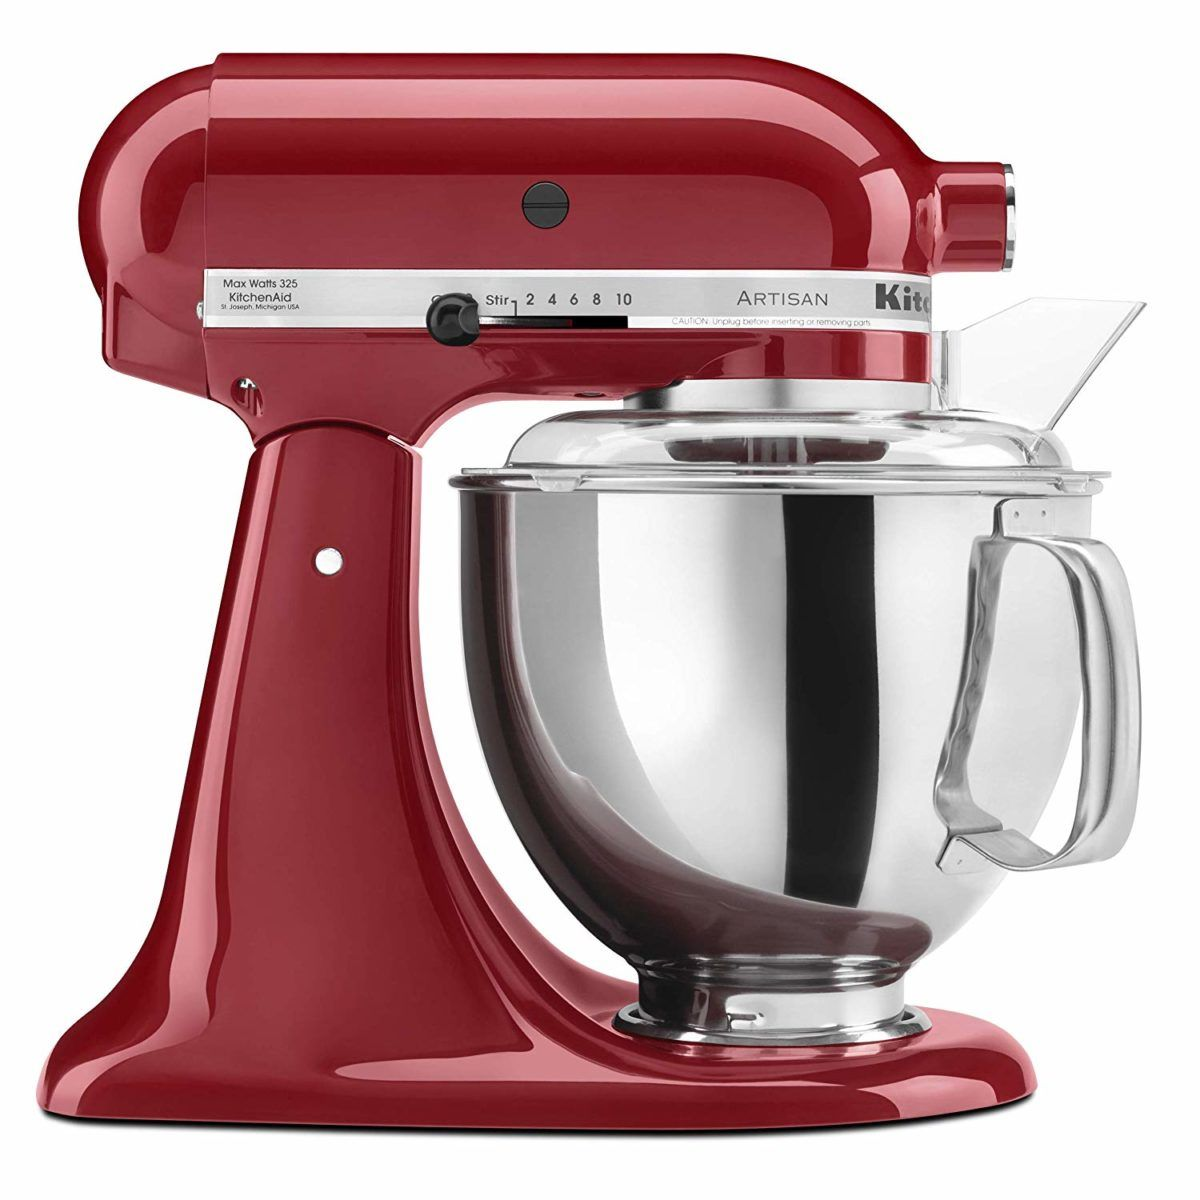 Unhealthy Consumption Be Damned For A Day My Black Friday Wish List In 2020 Kitchen Aid Kitchenaid Artisan Best Stand Mixer